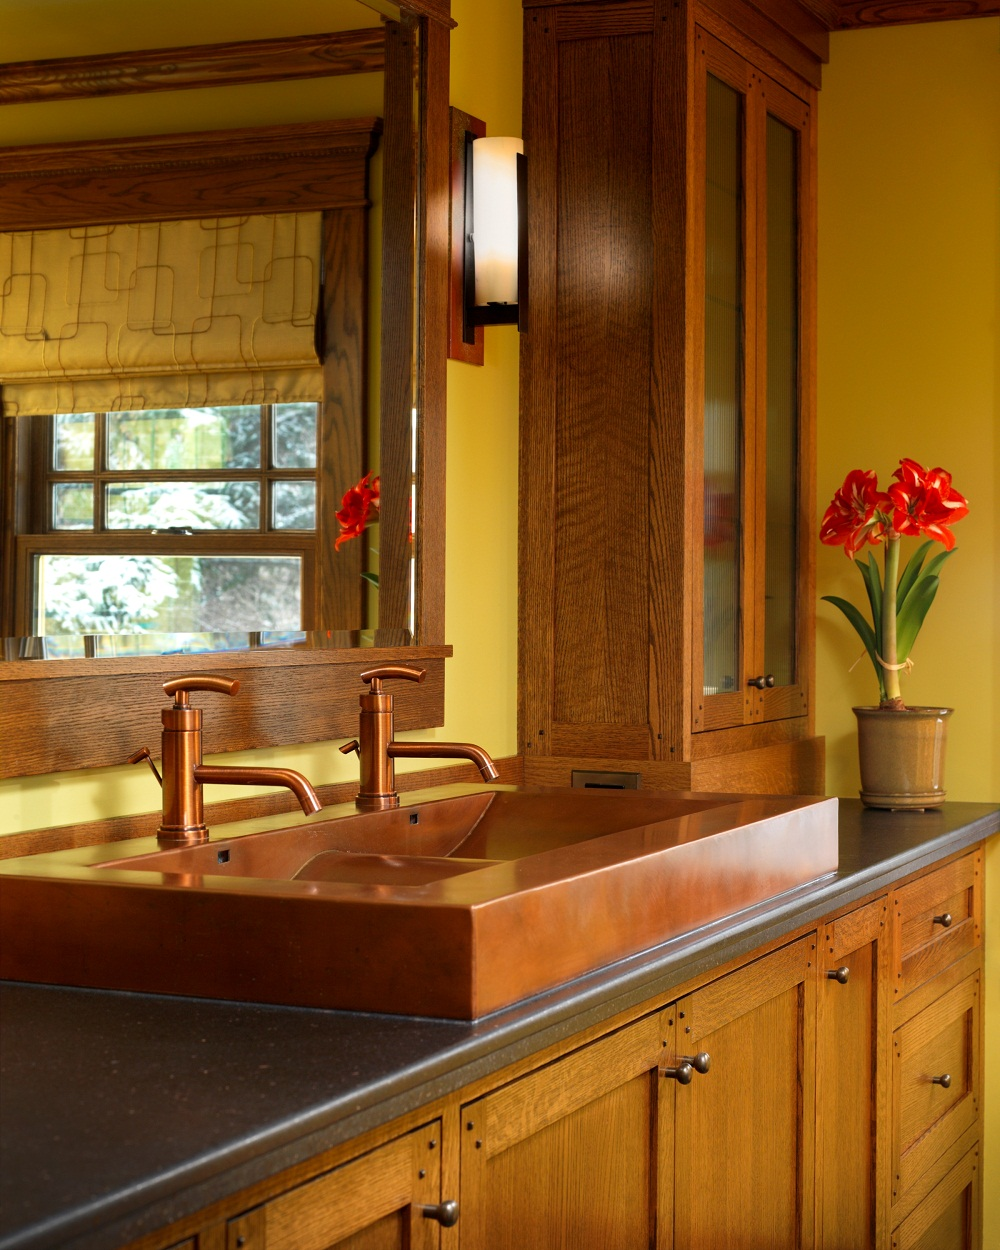 For bathroom decoration with copper bathroom sinks copper bathroom - Copper Trough Skirted Sink 22 X 48